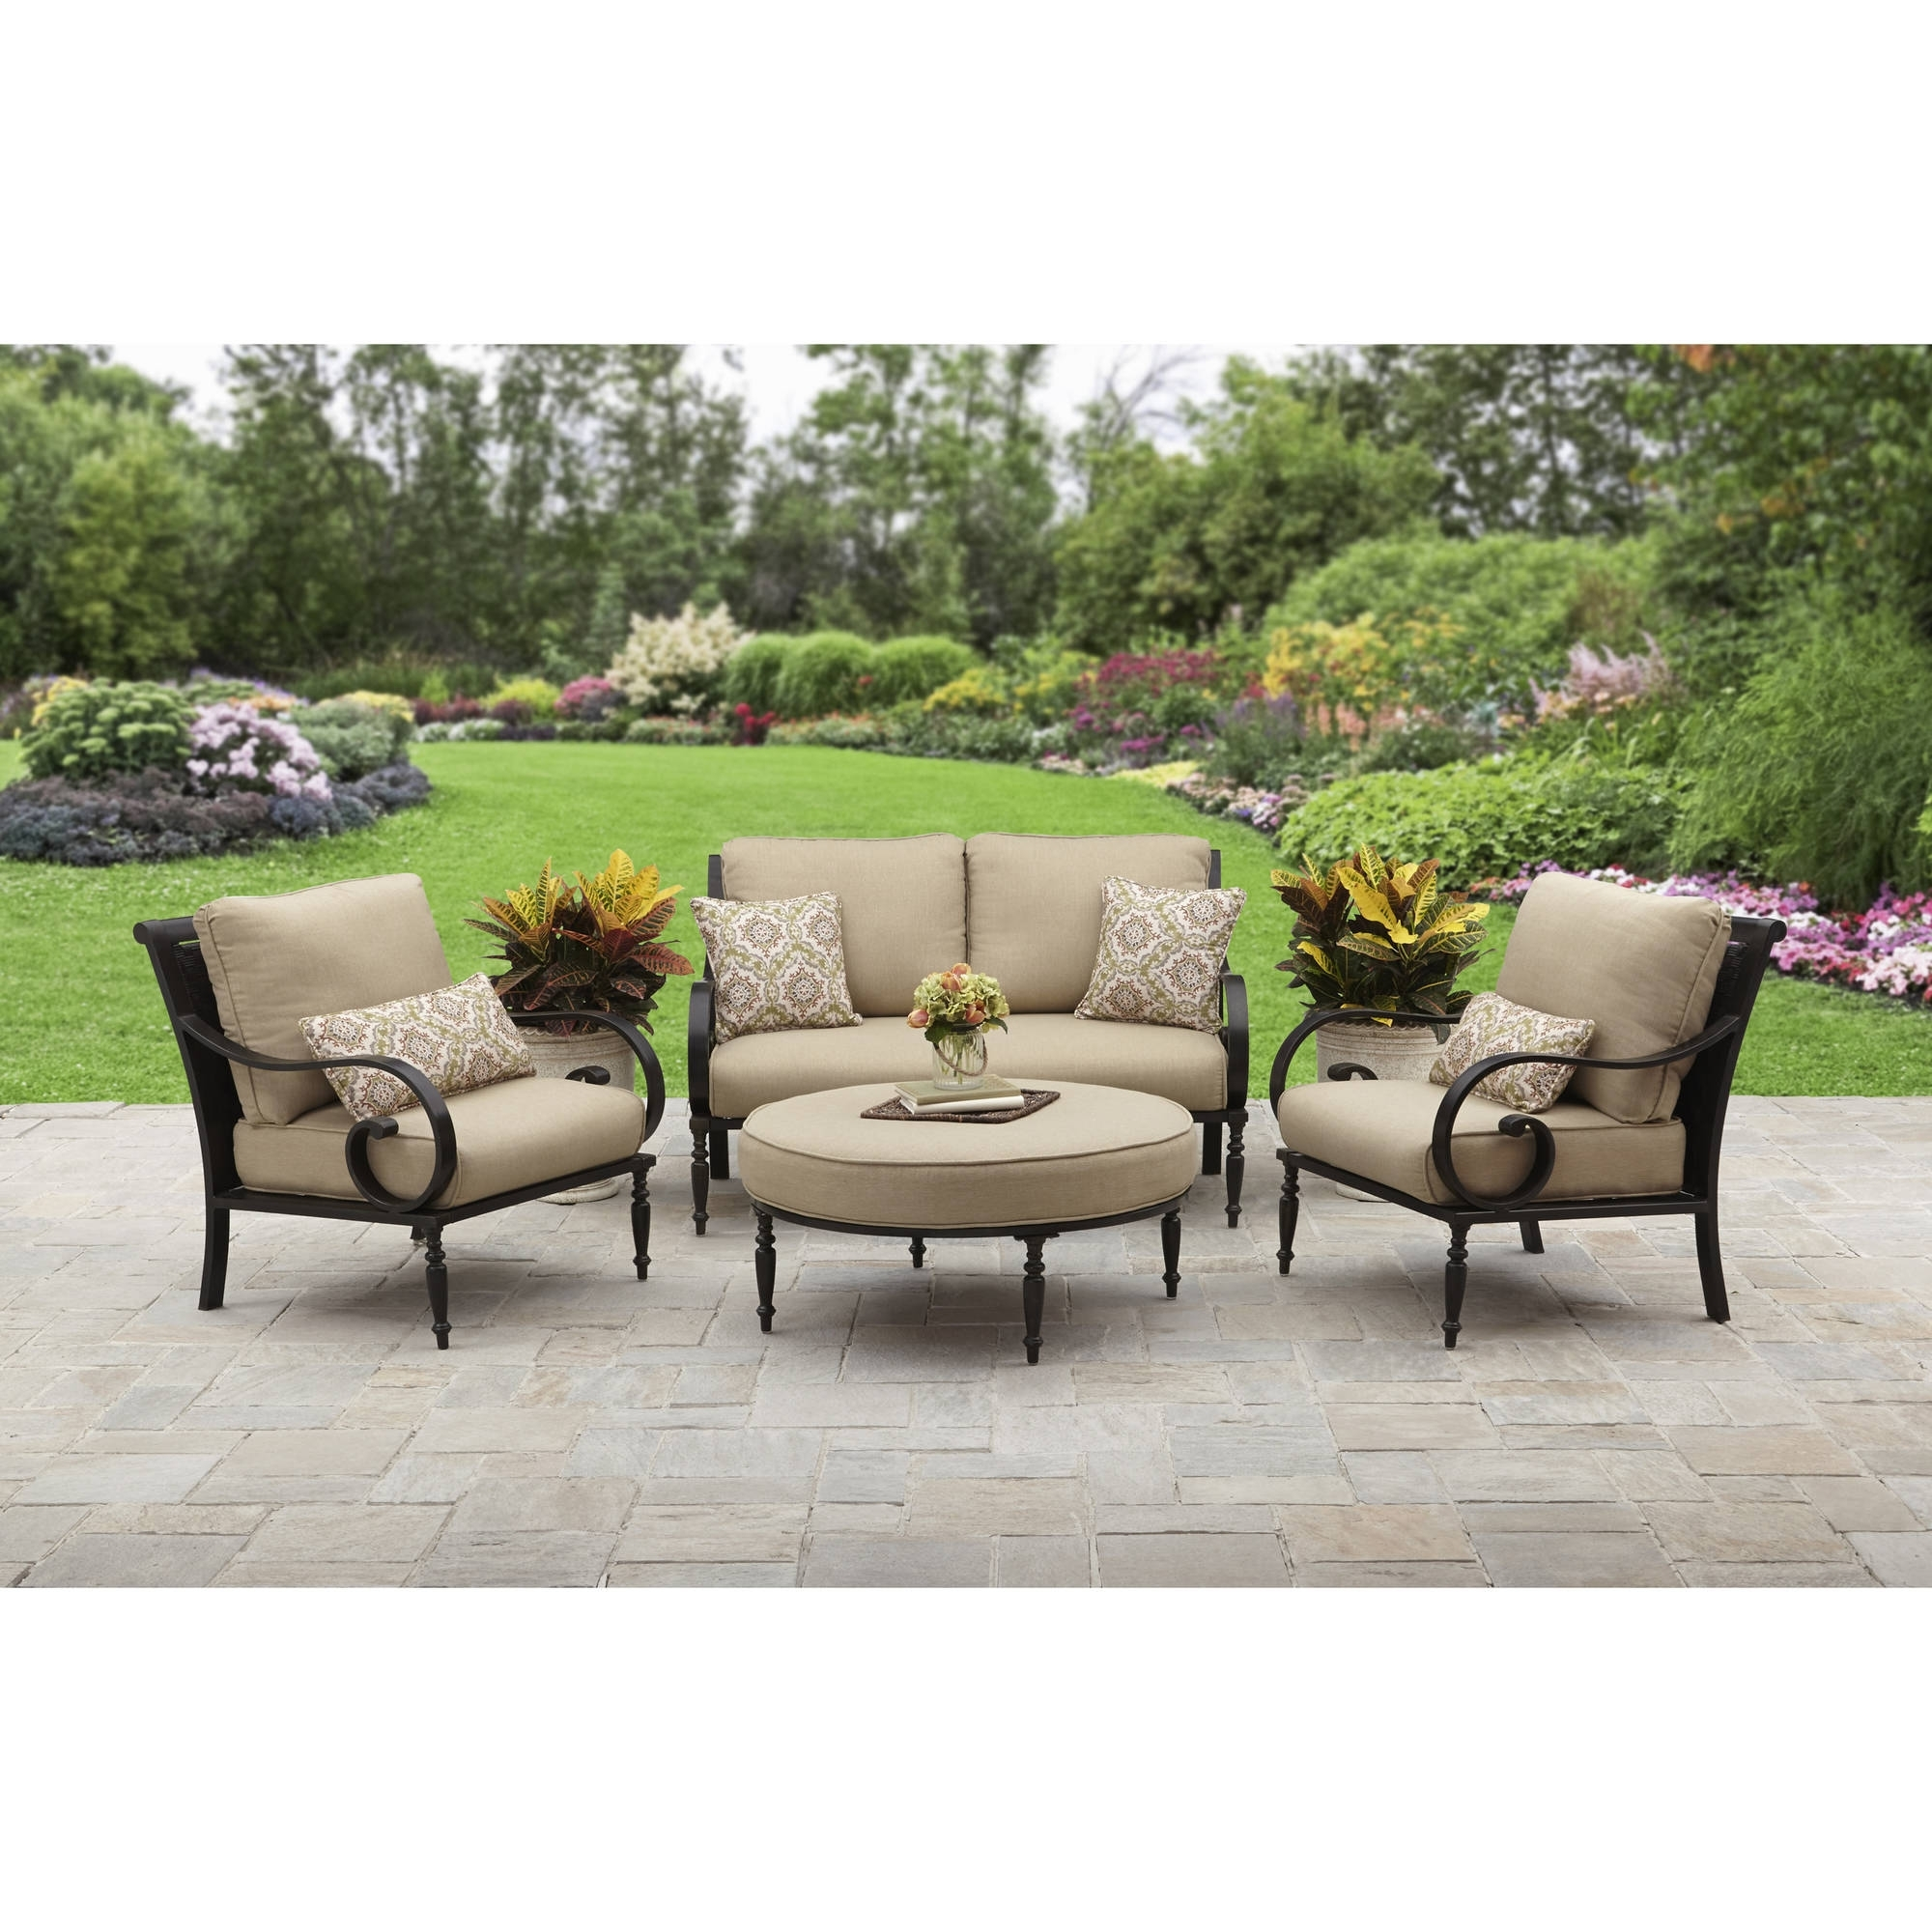 Most Popular Red Patio Conversation Sets Pertaining To Better Homes And Gardens Englewood Heights Ii Aluminum 4 Piece (View 6 of 15)